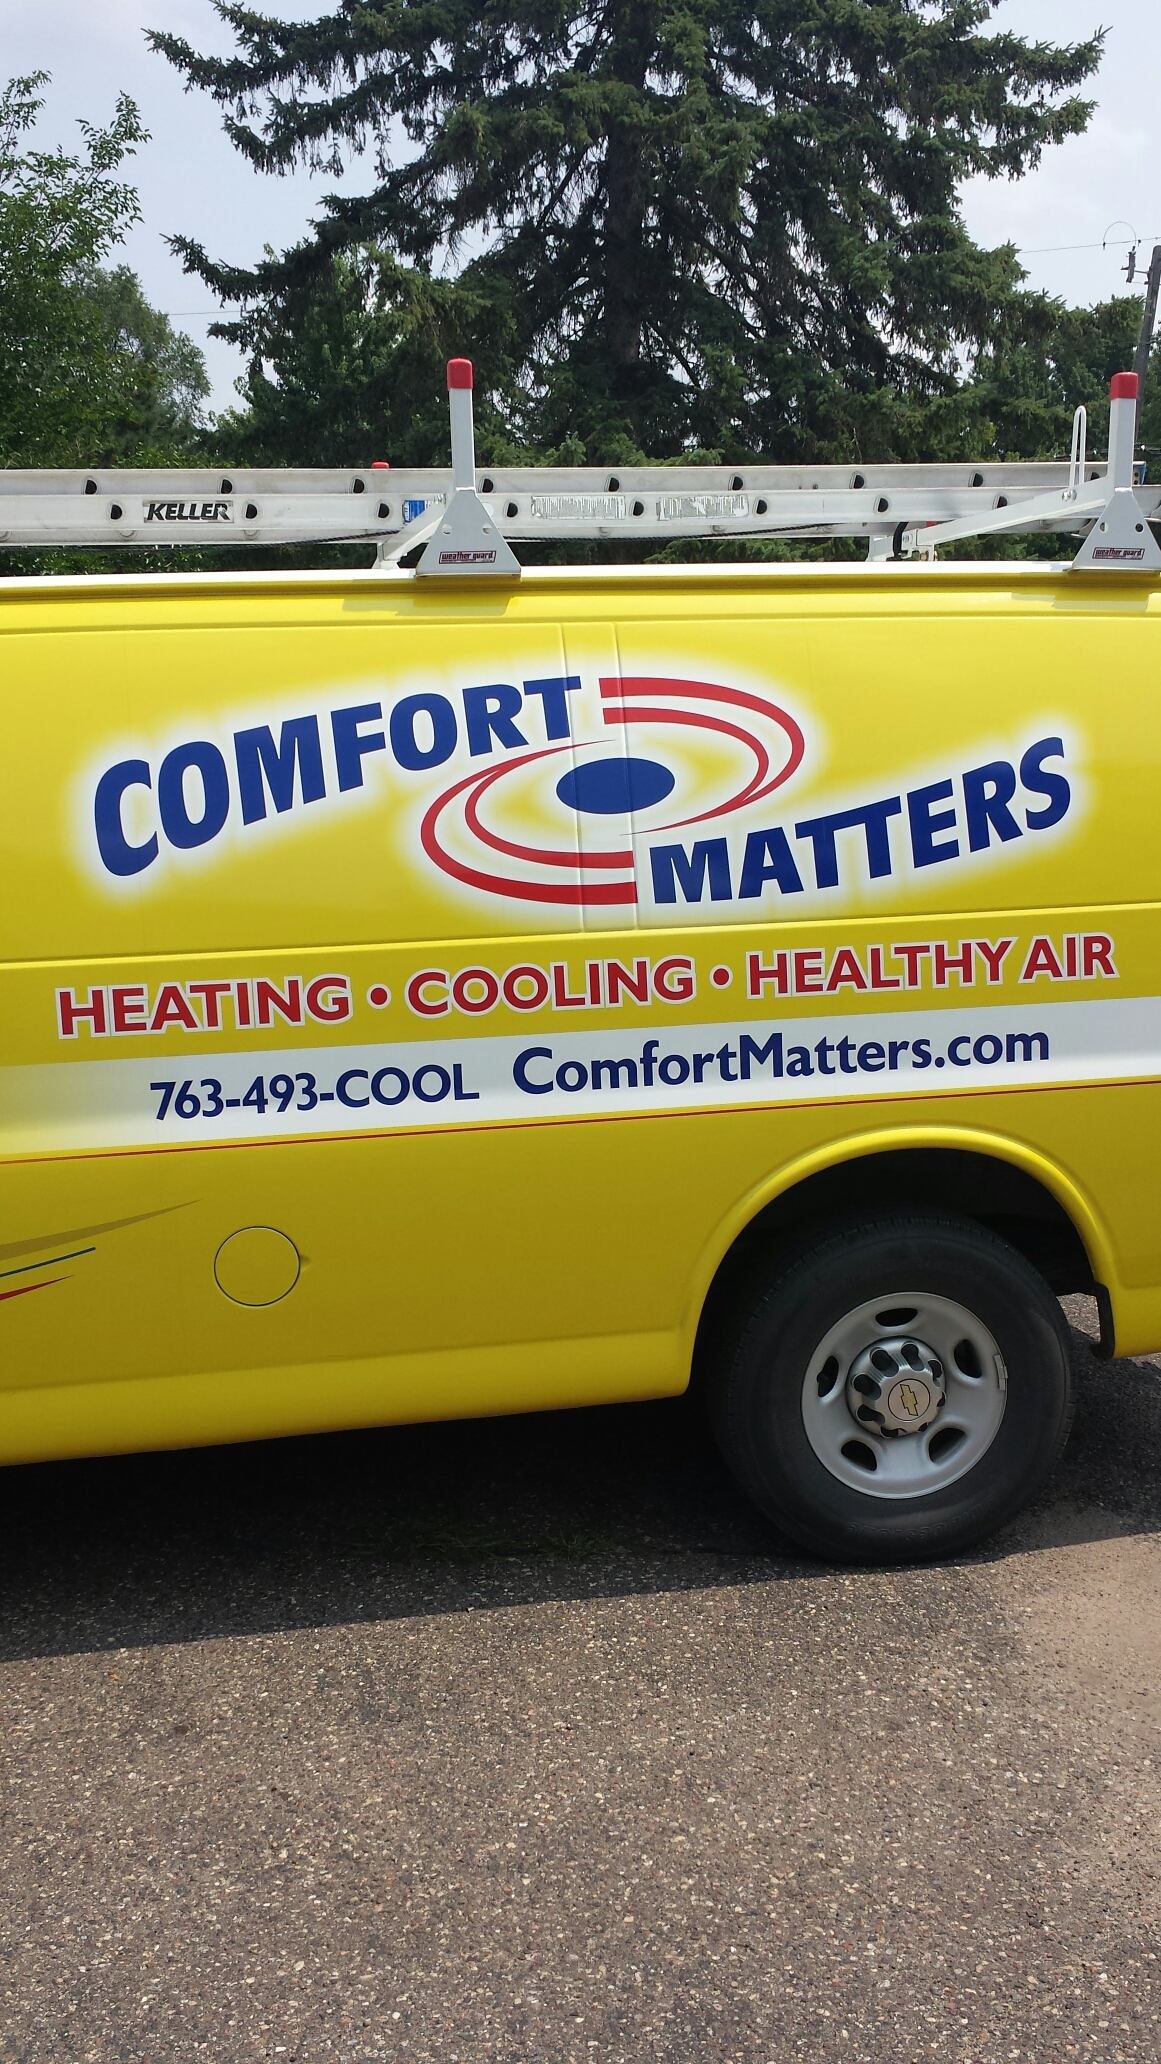 Orono, MN - Emergency heating service. Performed a cleaning and tune up on a Bryant furnace, AprilAire humidifier, and Venmar HRV. Also repaired the wiring and built a new drain line on the humidifier.